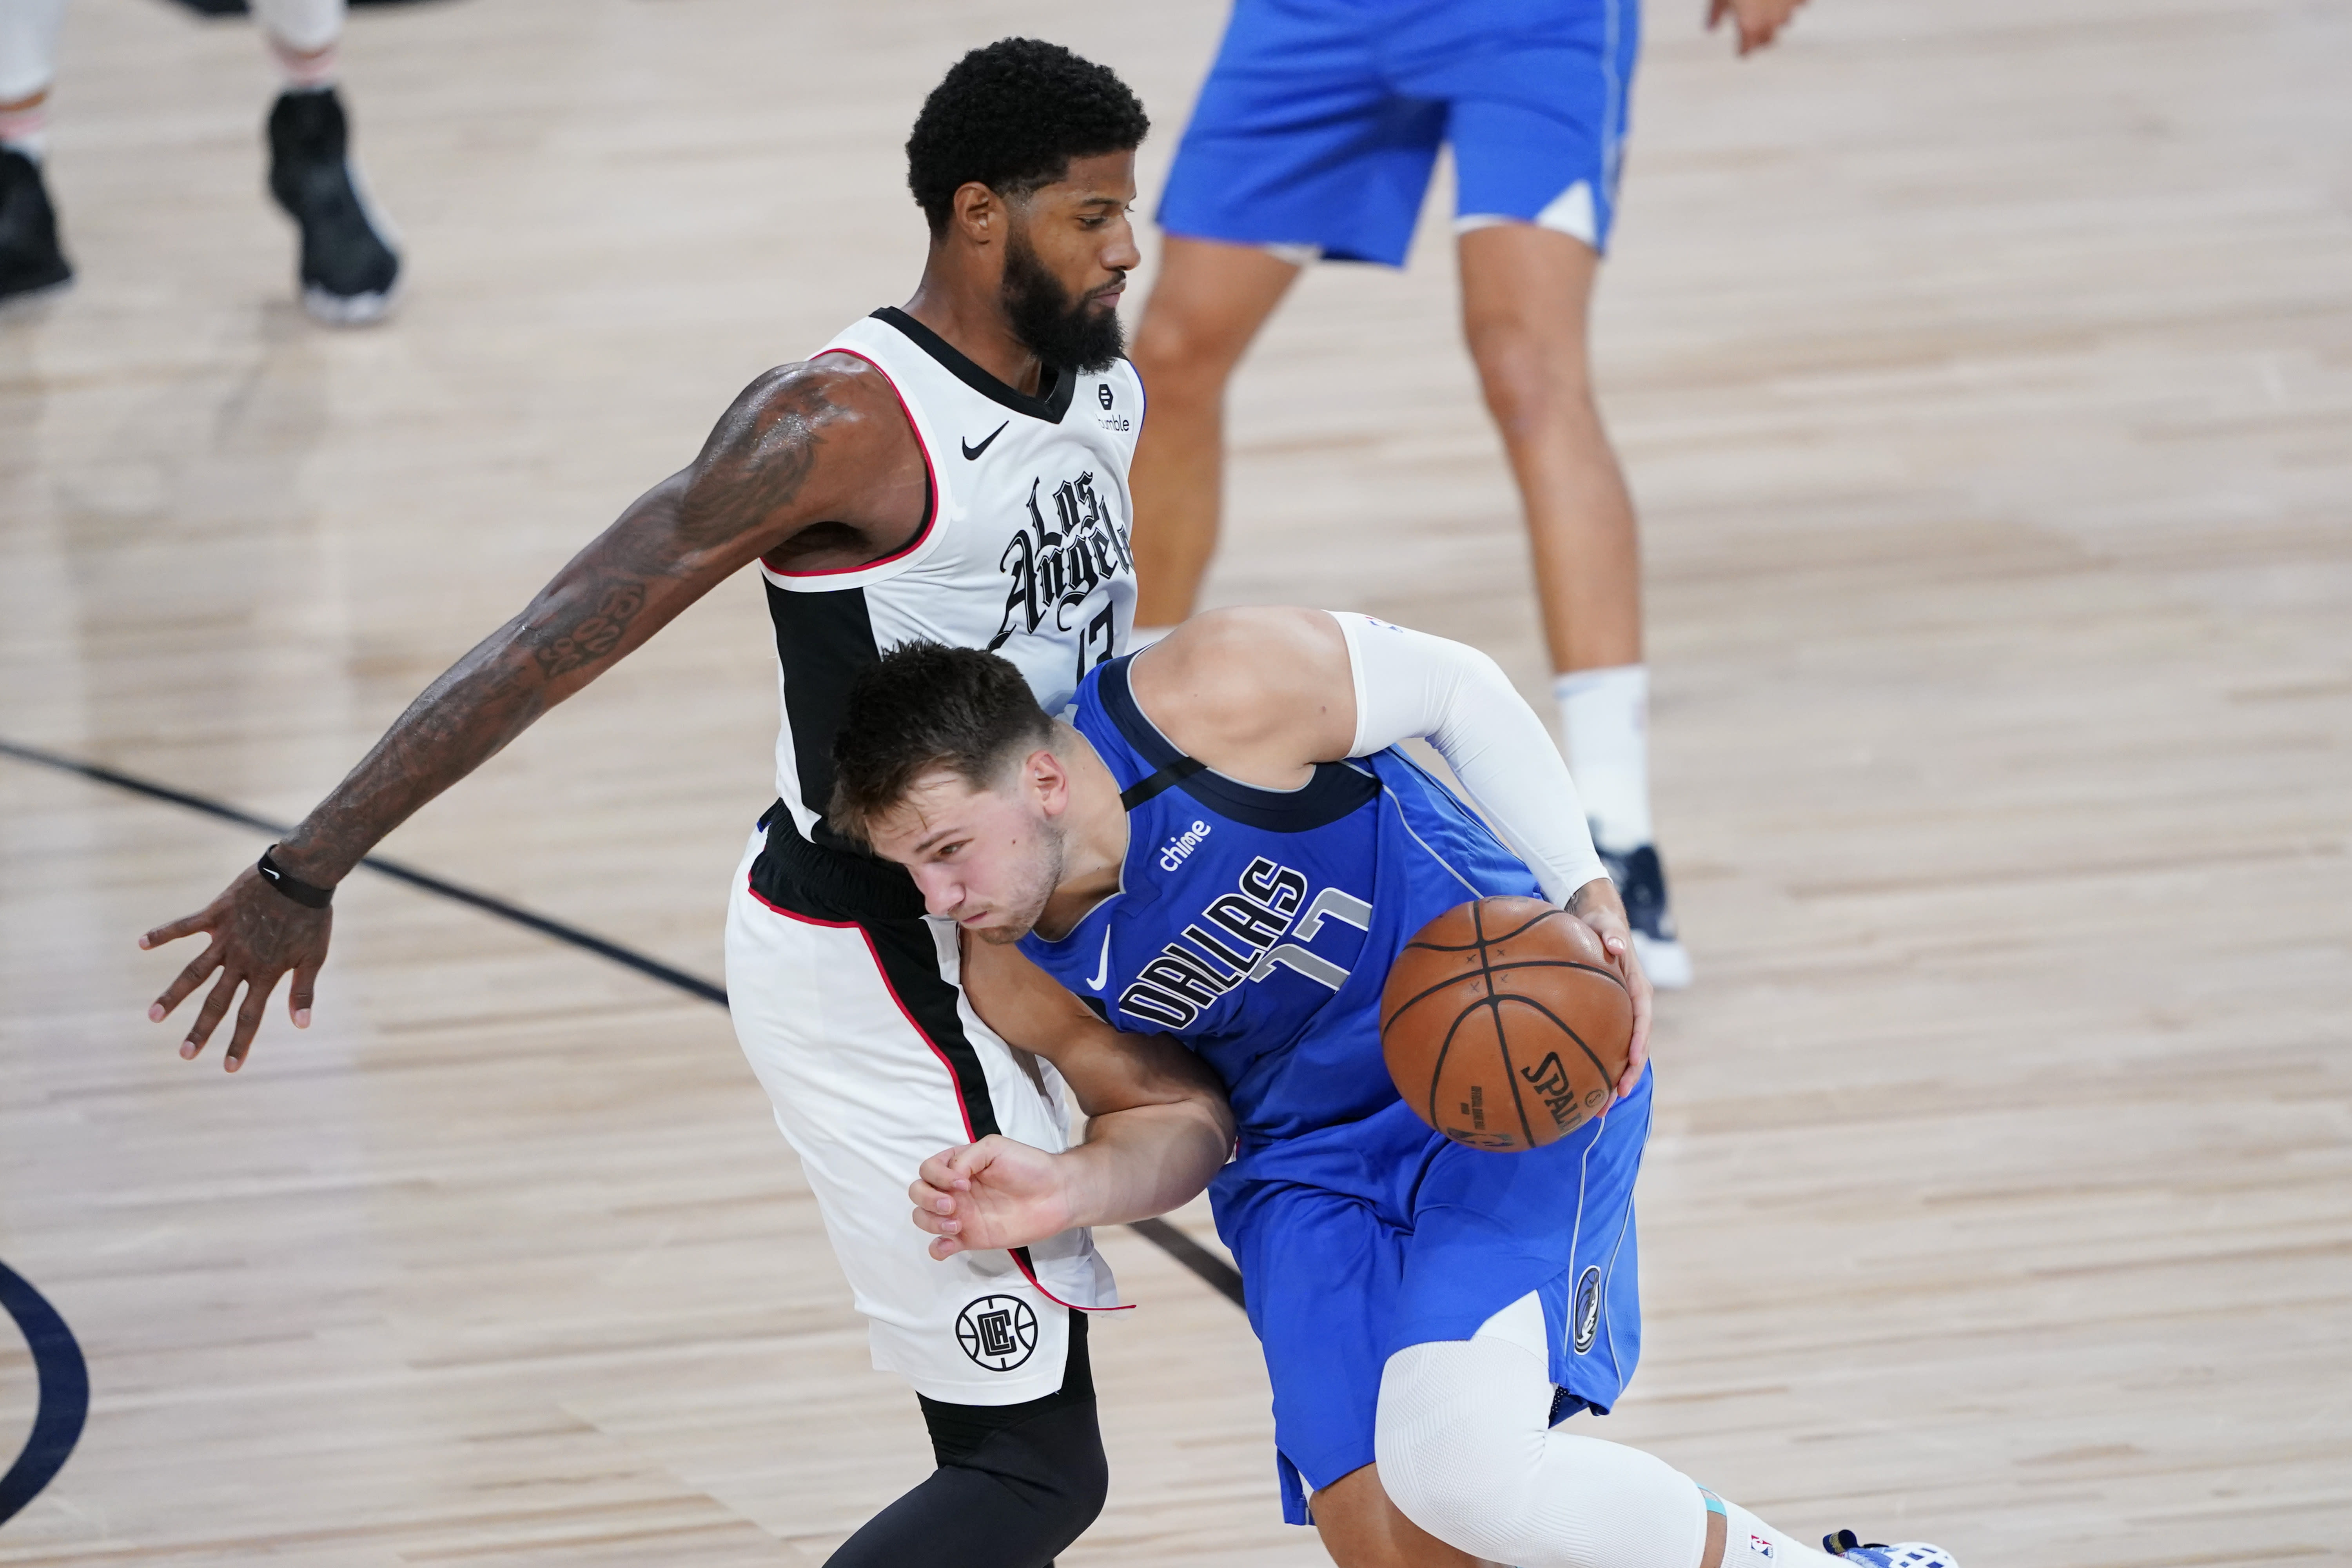 Dallas Mavericks' Luka Doncic (77) drives against Los Angeles Clippers' Paul George (13) during the first half of an NBA basketball first round playoff game Friday, Aug. 21, 2020, in Lake Buena Vista, Fla. (AP Photo/Ashley Landis, Pool)